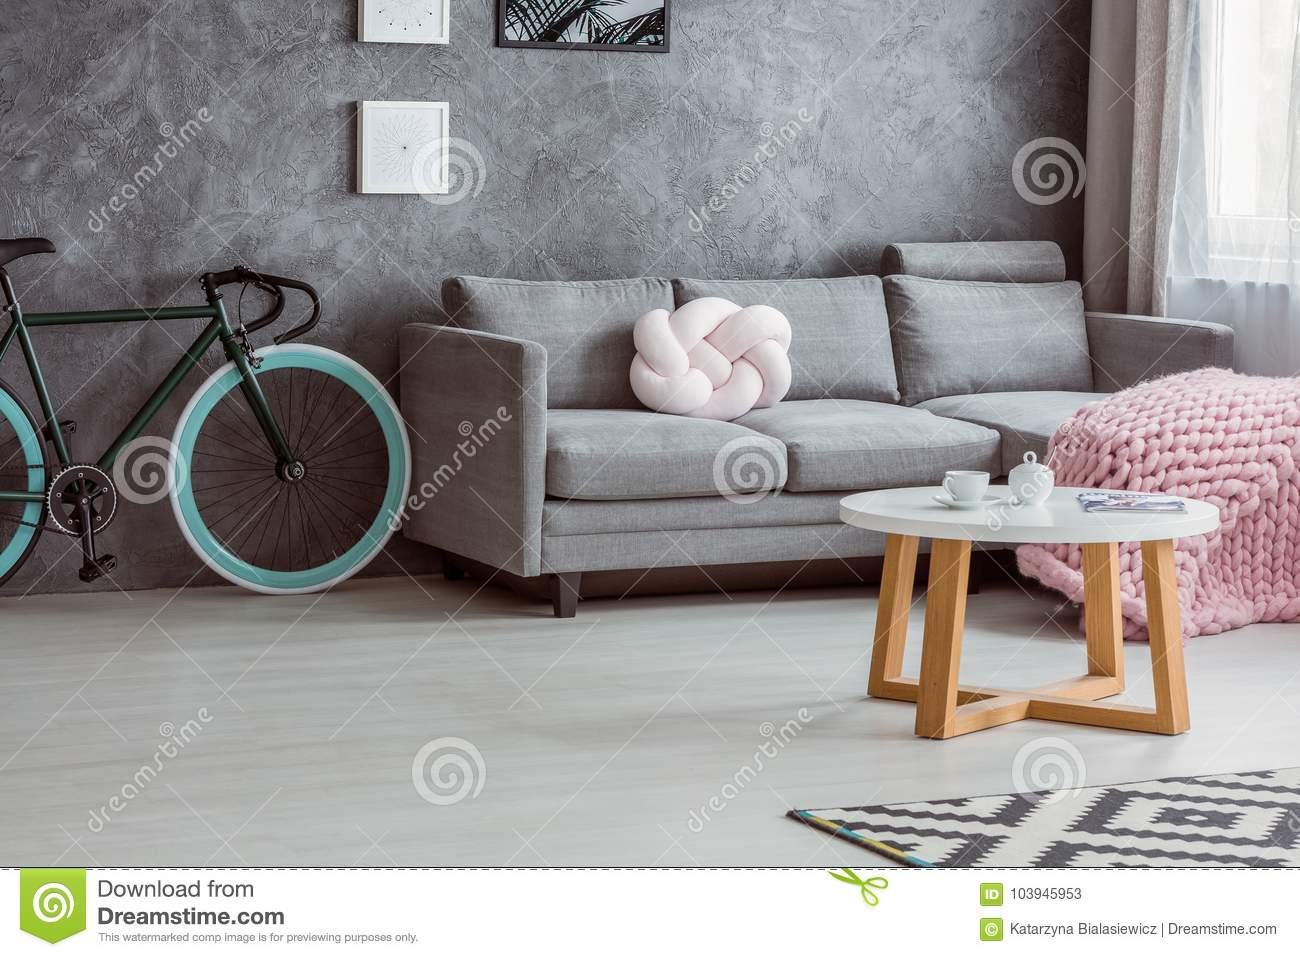 Bicycle And Simple Couch